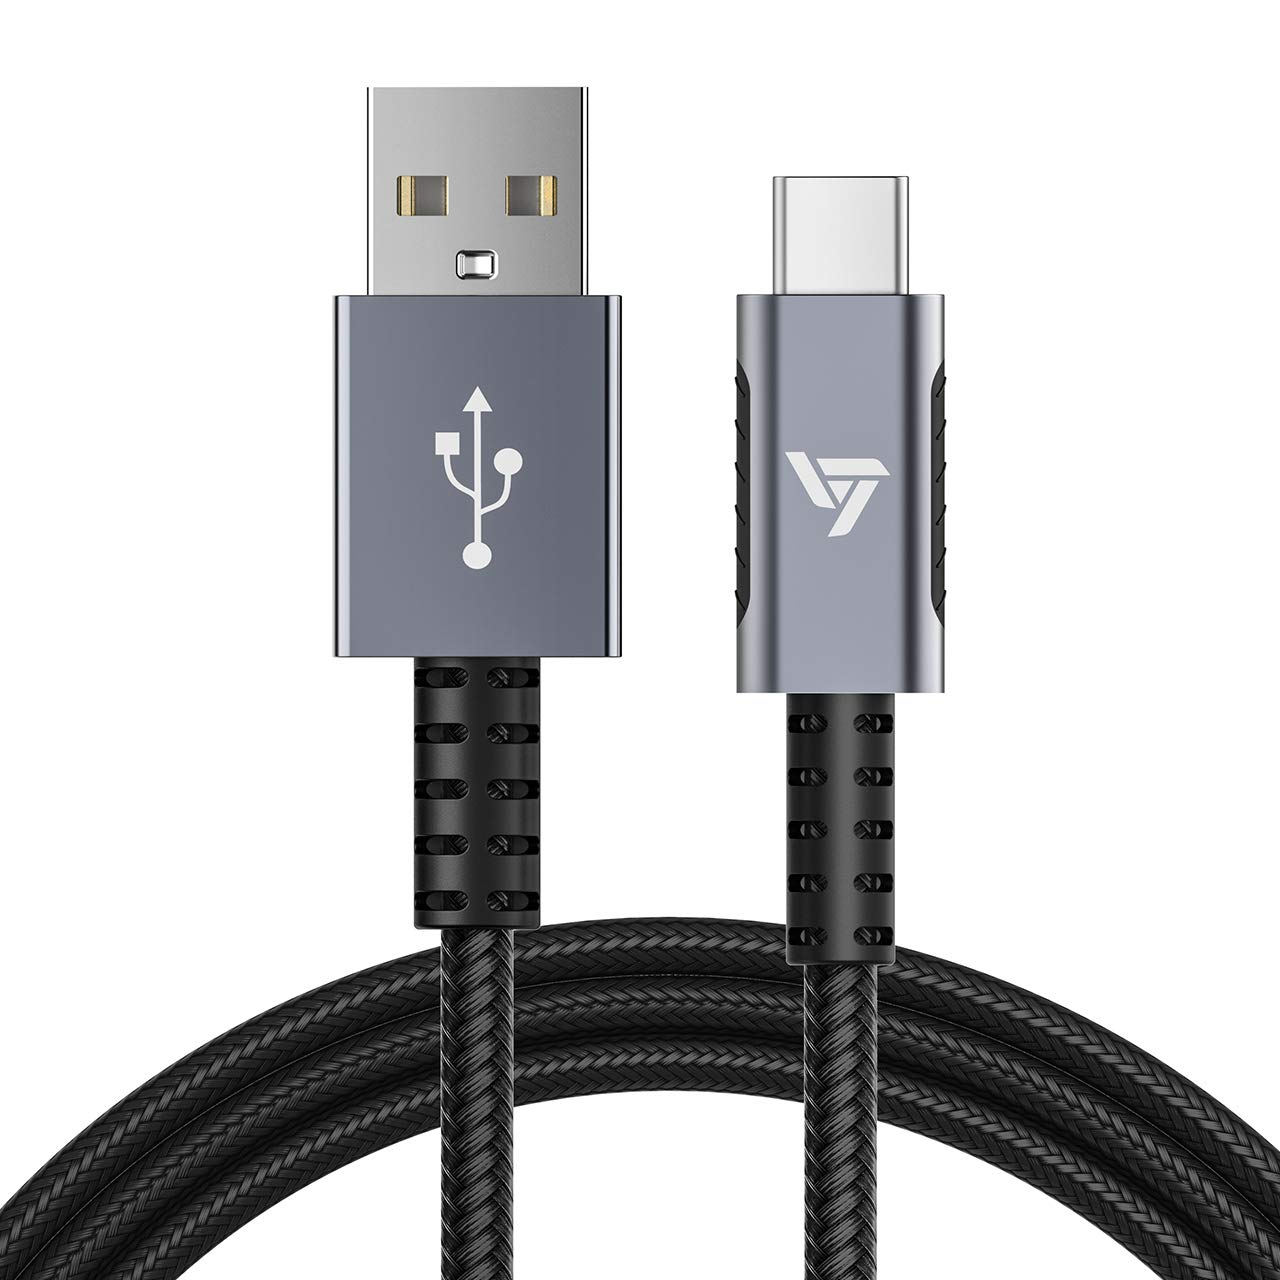 VicTsing Type-C USB Charger Cable, 2 Pack( 6.6ft/2M ) Samsung Charging Cable for Galaxy S9 A5 2017 S7 S8 S9 Plus Note 8, LG G6 G5 V20 V30, HTC, Google Pixel 2, Huawei, OnePlus 2, 5V/3A 56K Nylon Braided Tangle-Free USB-C to USB A Fast Charger Cord, Silver